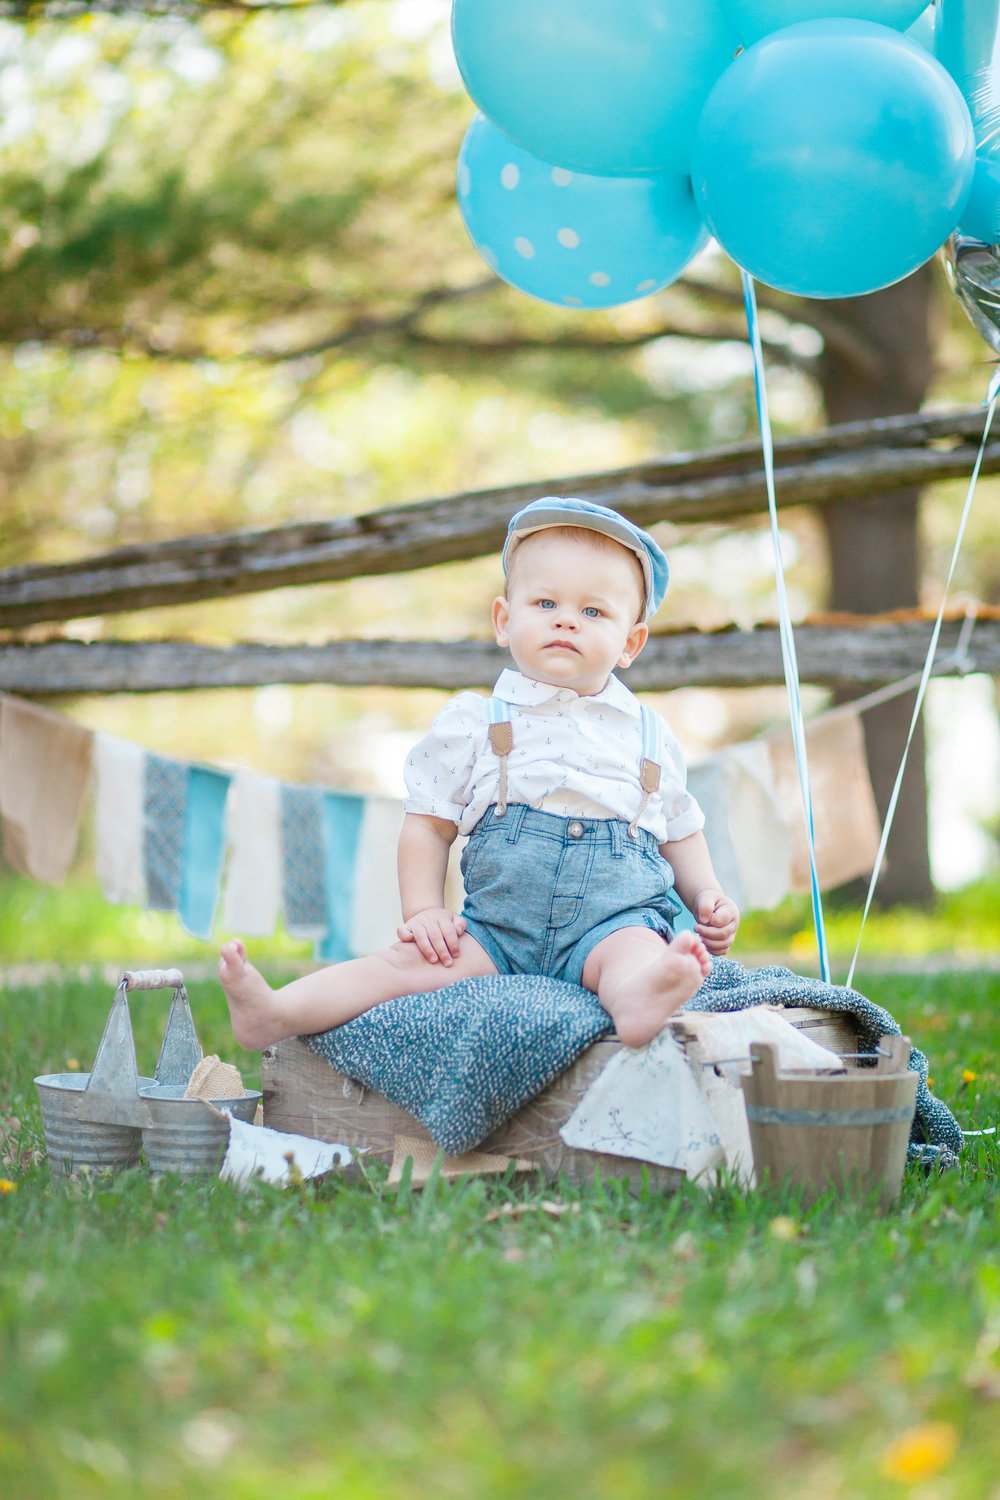 Amy D Photography- Cake Smash- Outdoor Cake Smash- Boys Cake Smash- Outdoor Boys Cake Smash- First Birthday Photos- Family Photography- Children Photography (67 of 67).jpg